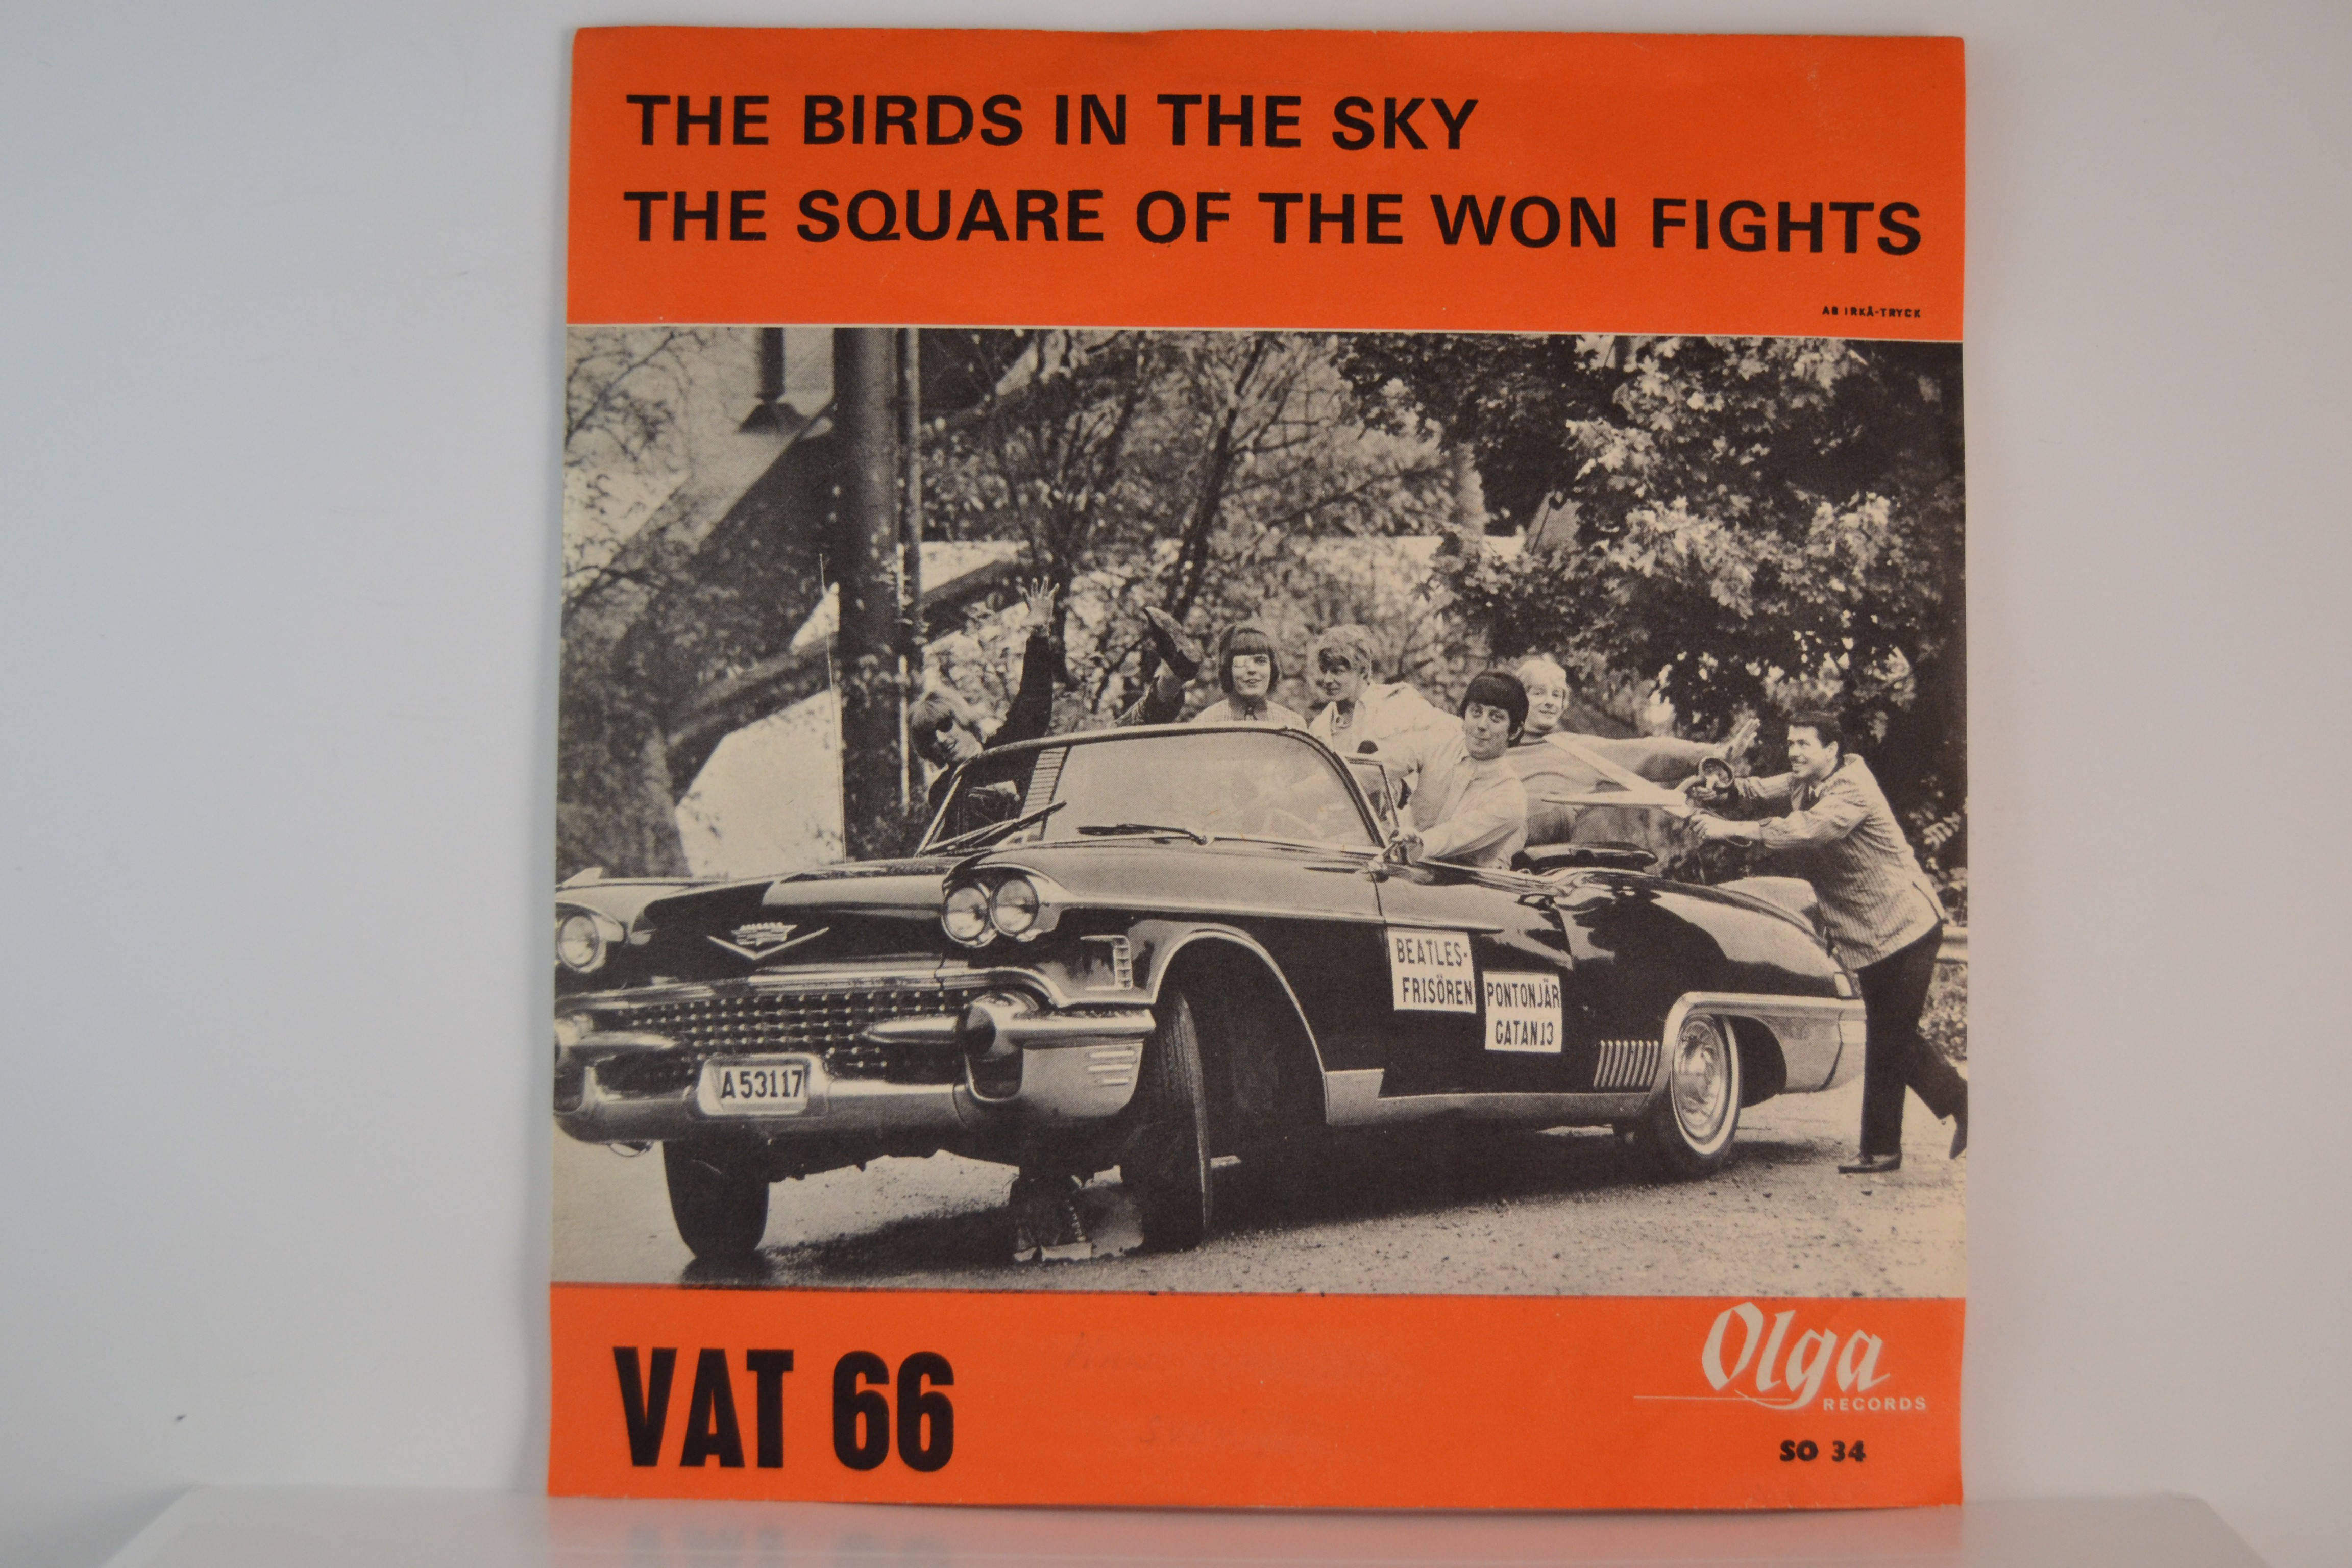 VAT 66 : The birds in the sky / The square of the won fights